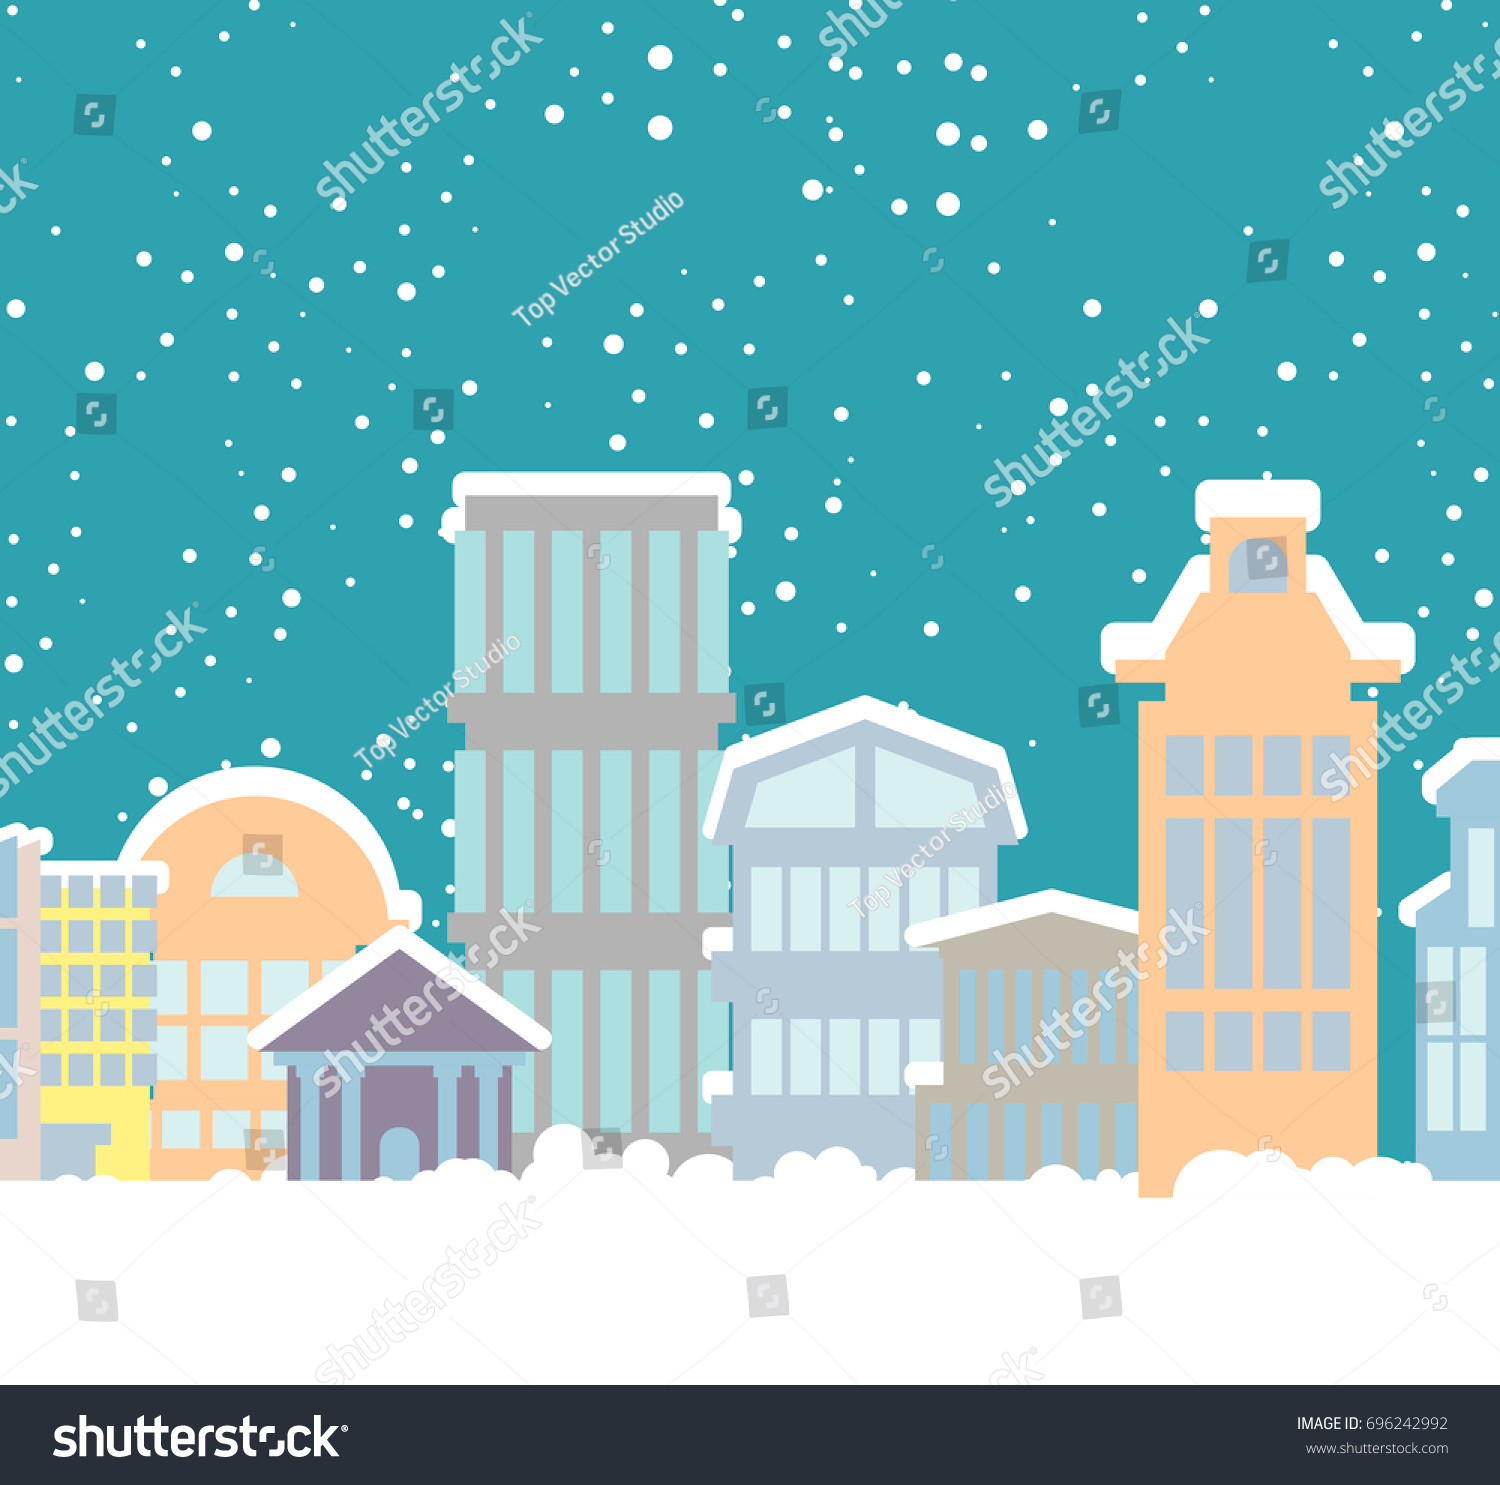 winter christmas city buildings in snow snowfall in town new year background - Christmas City Studios